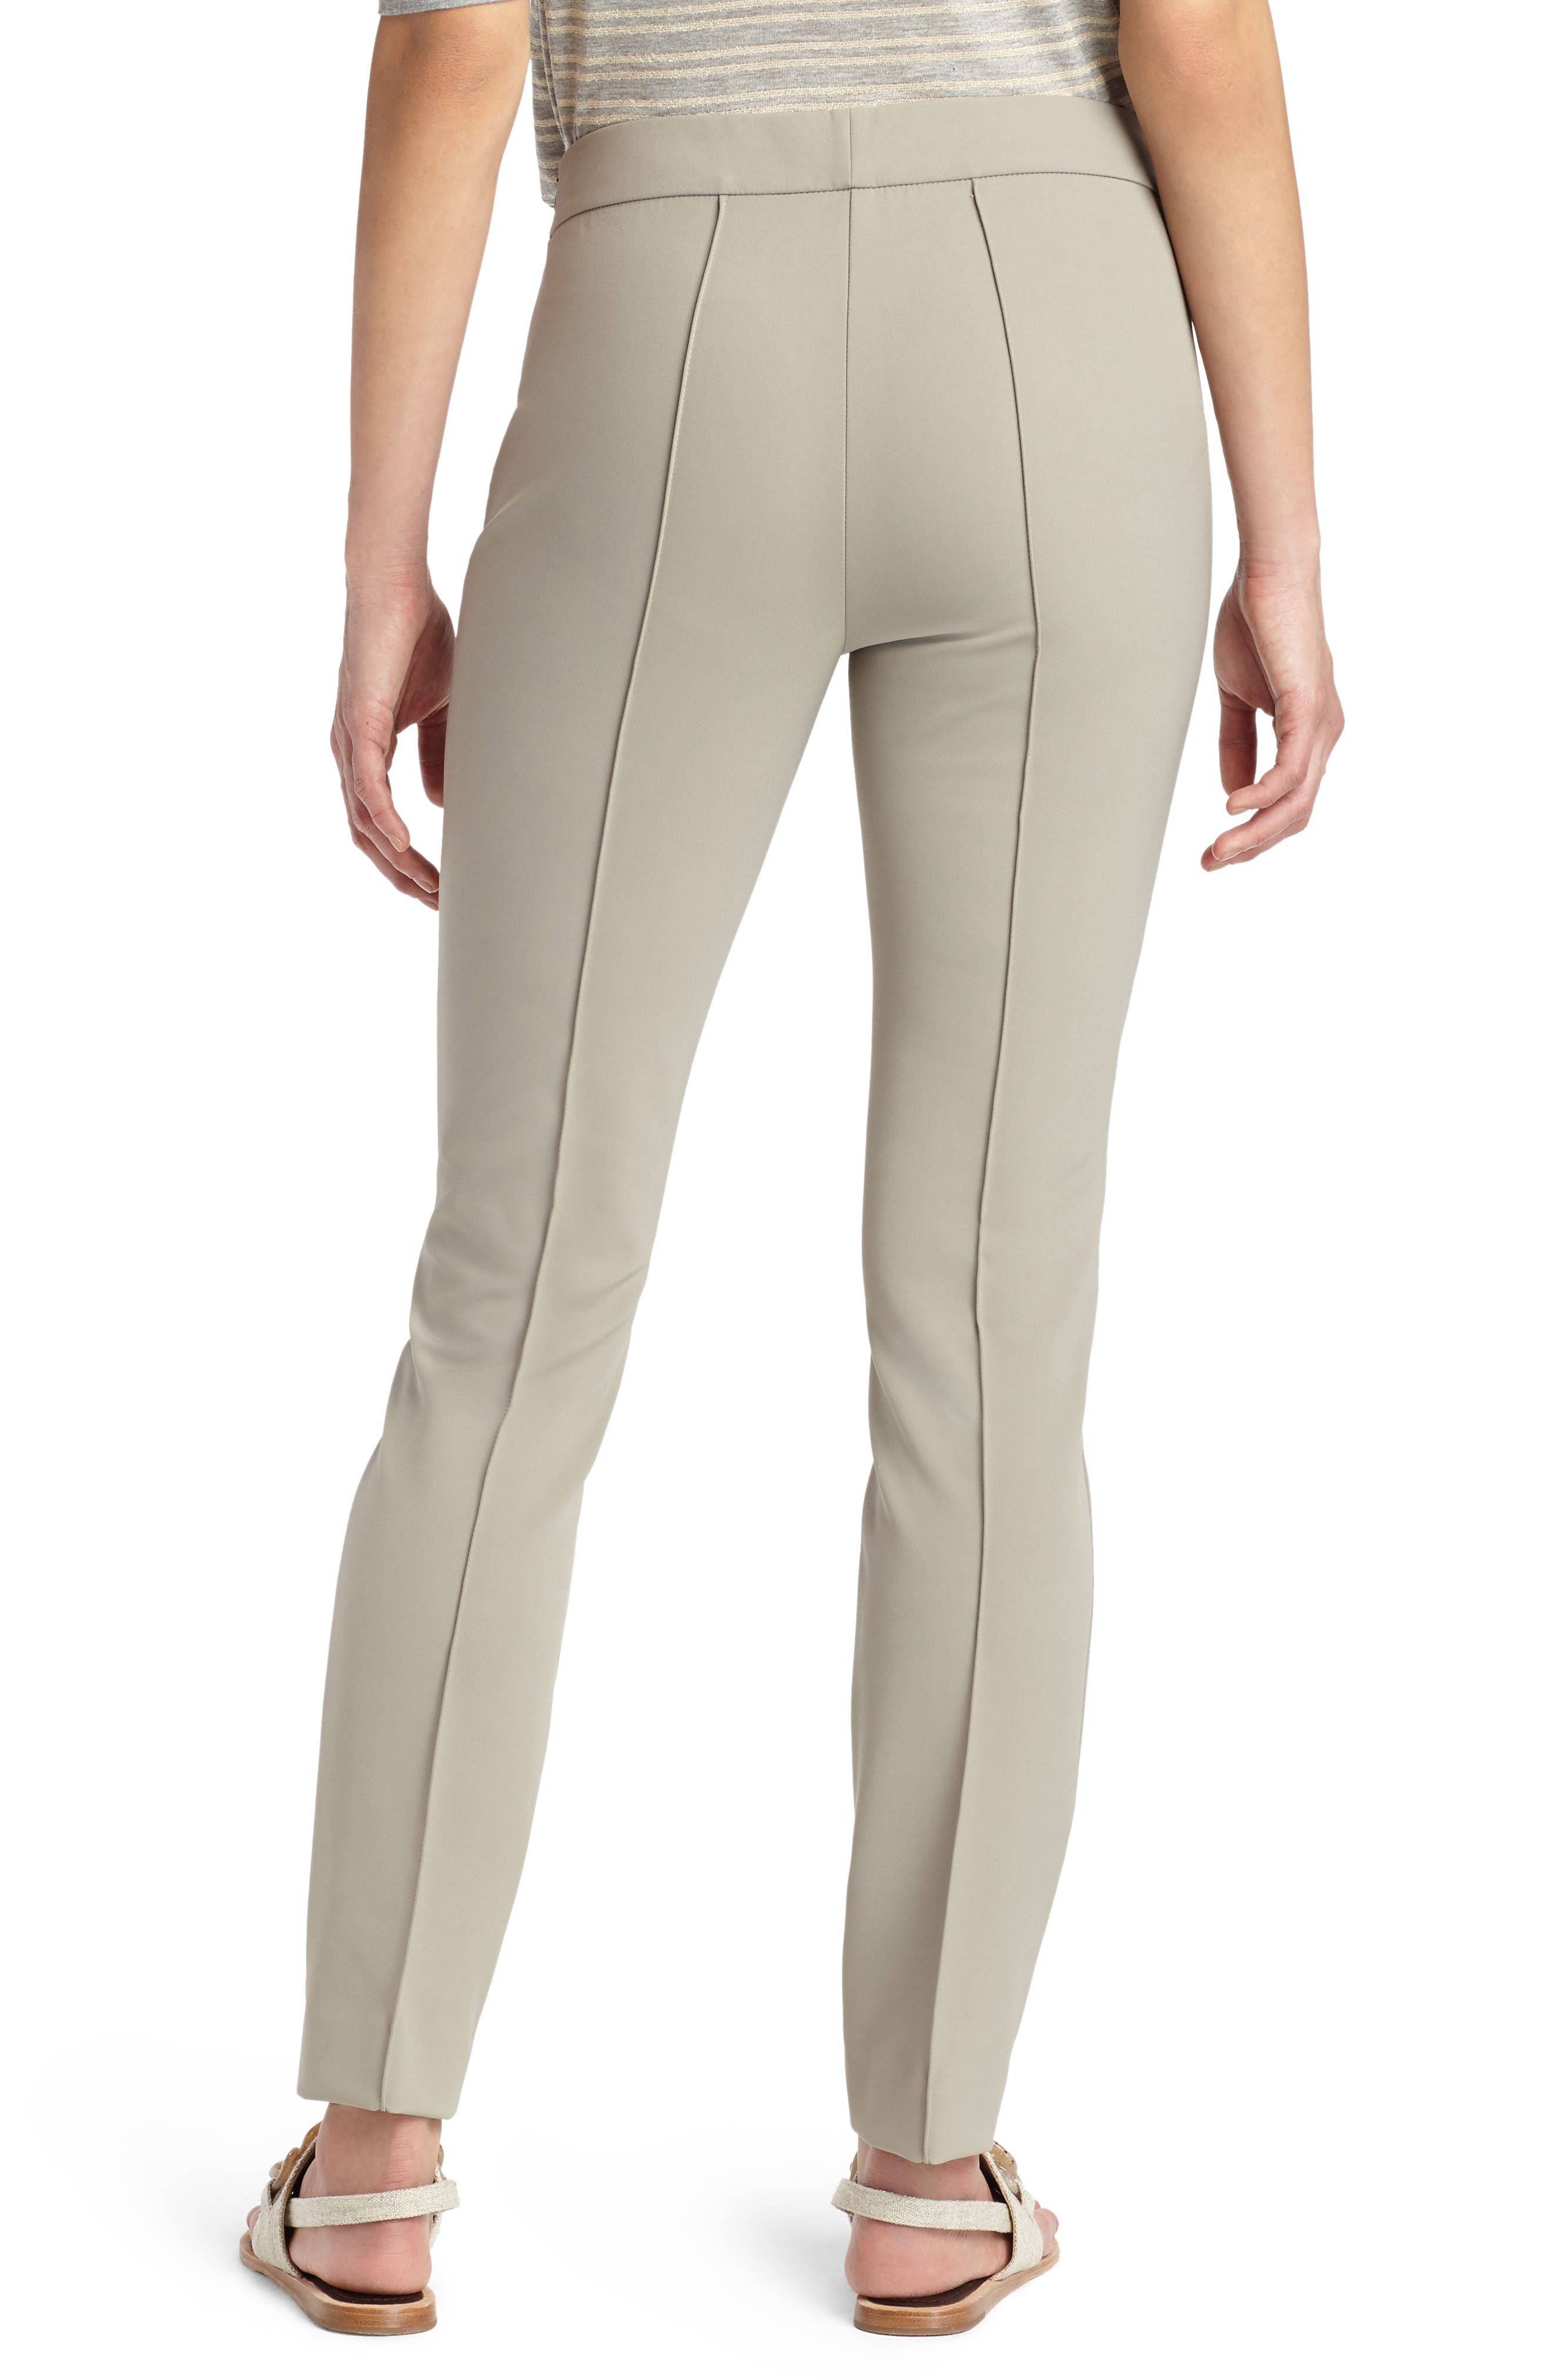 'Gramercy' Acclaimed Stretch Pants,                             Alternate thumbnail 2, color,                             PARTRIDGE